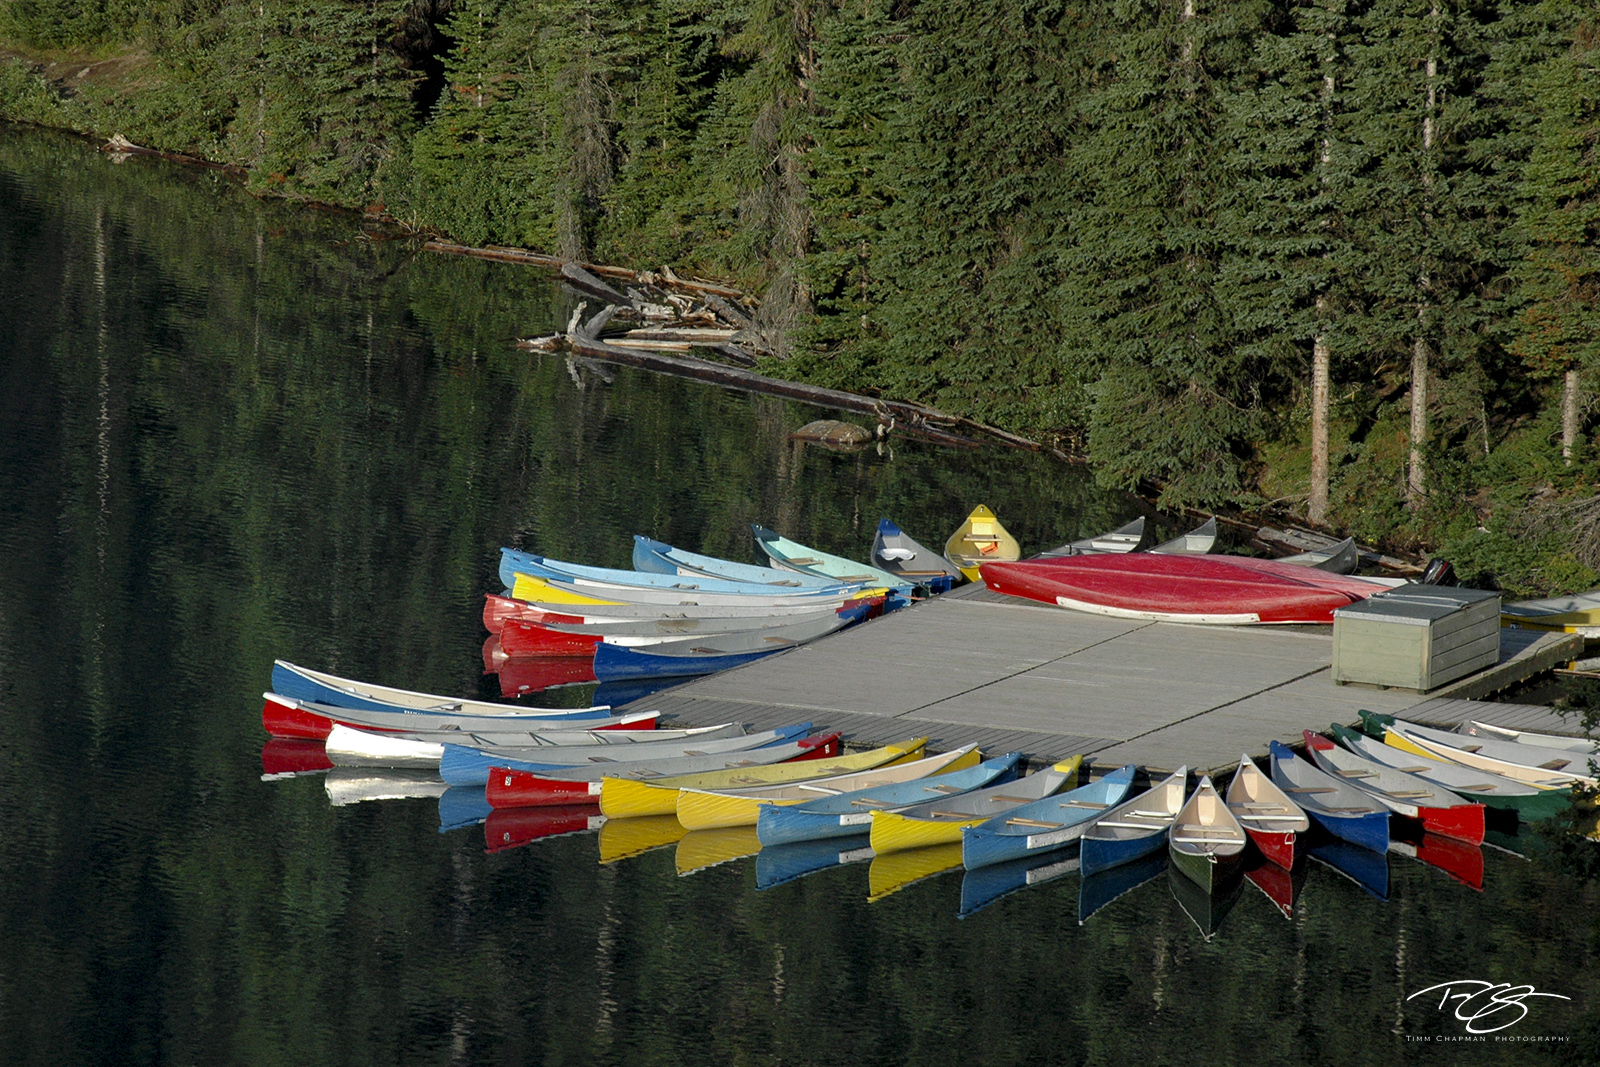 canoe, canoes, lake, reflection, paddling, kayak, dock, cottage life, photo